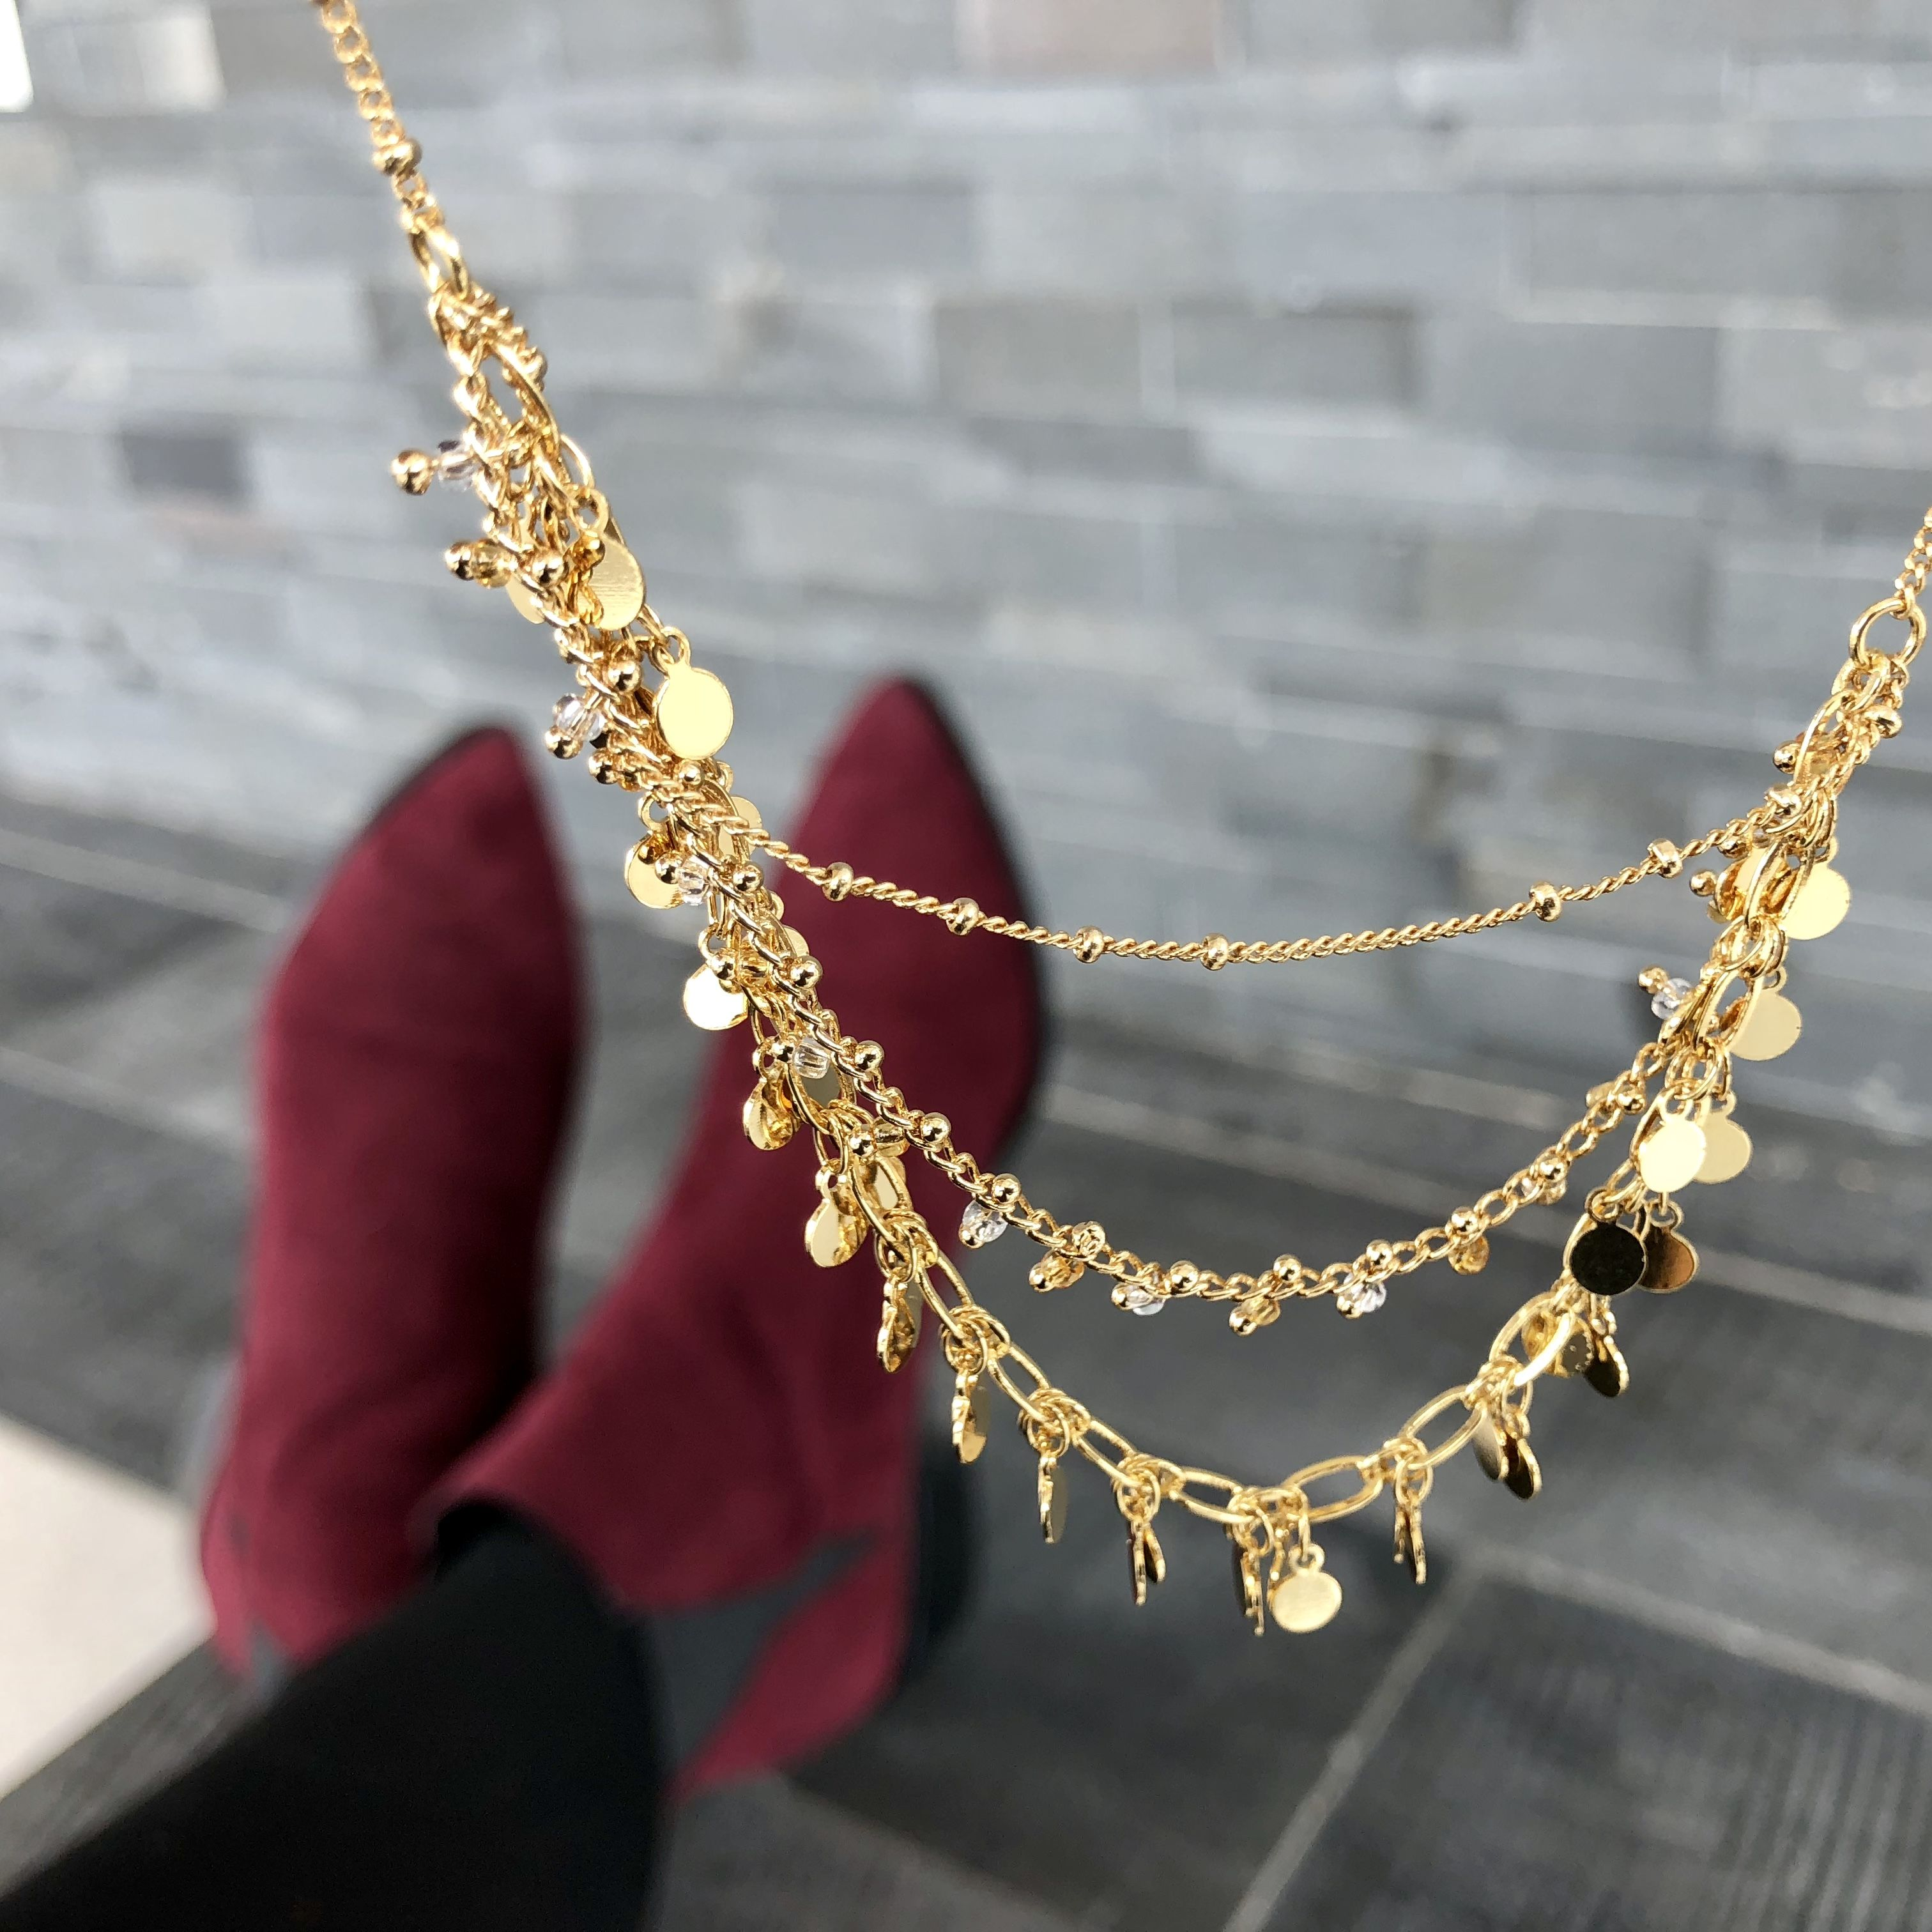 69bb84f116 Dipped in 14K gold, the adjustable Camilla statement necklace is truly  crafted to perfection.